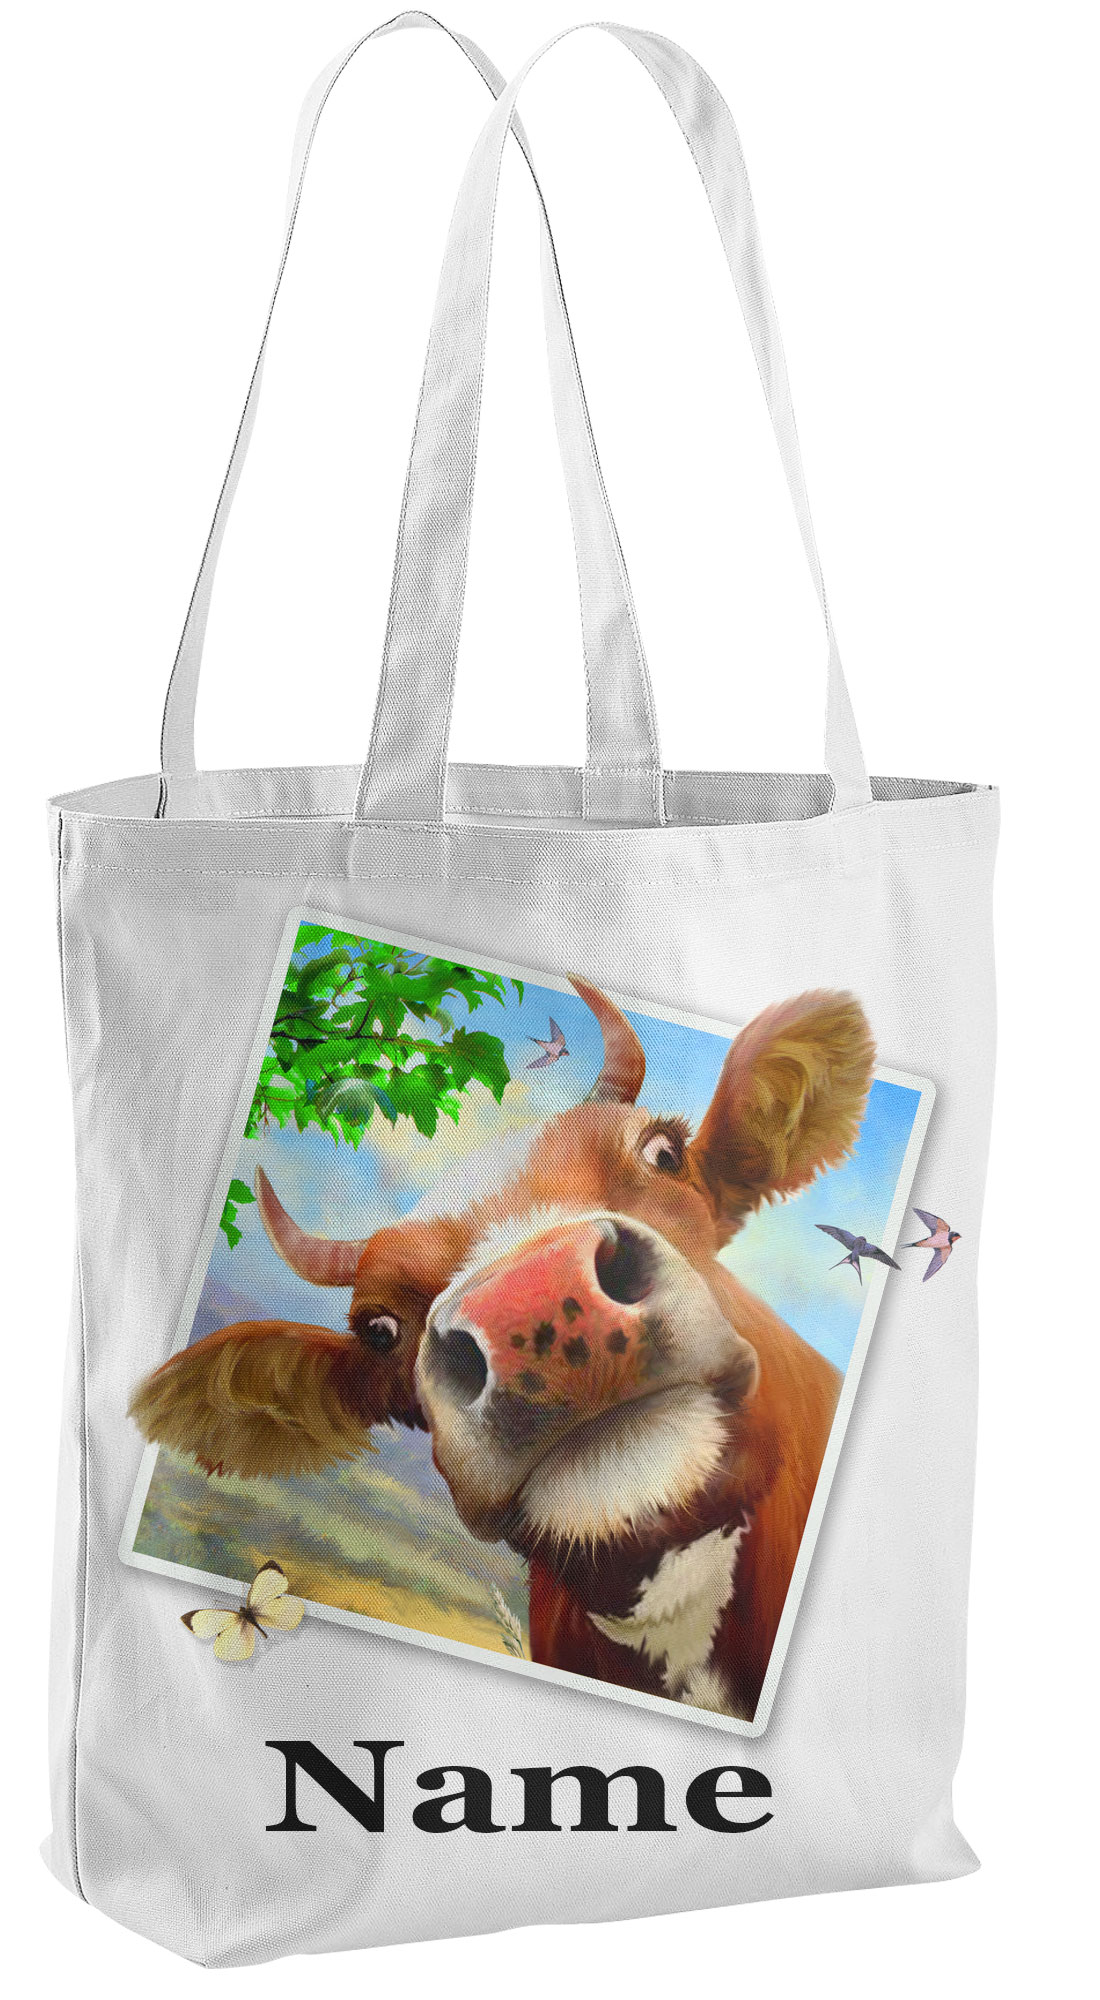 Cow Tote Shopping Bag